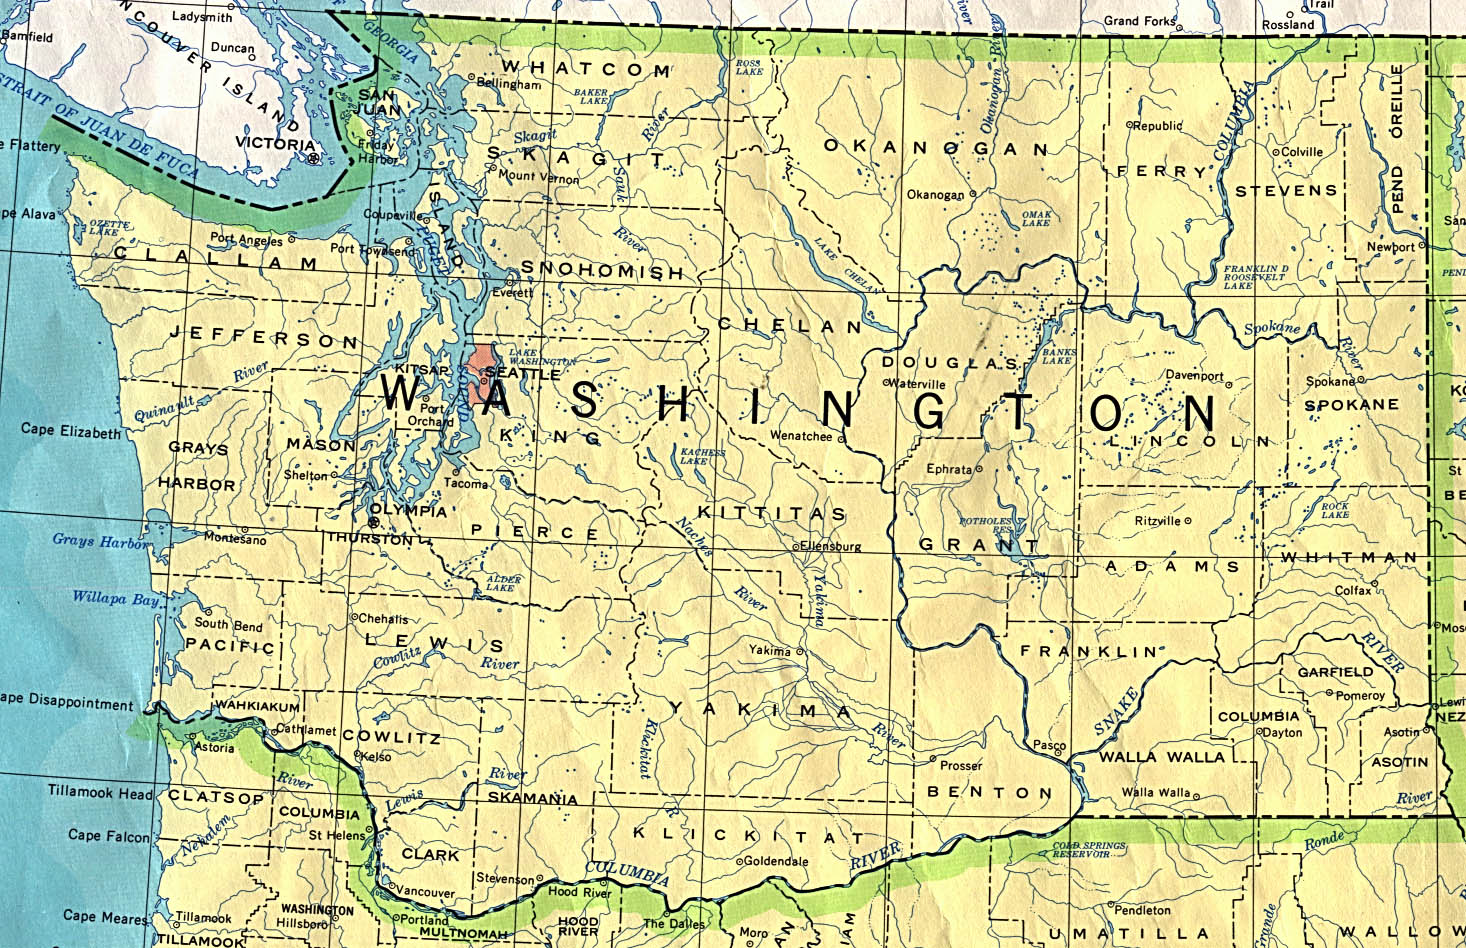 Maps of Washington State Map, United States - mapa.owje.com